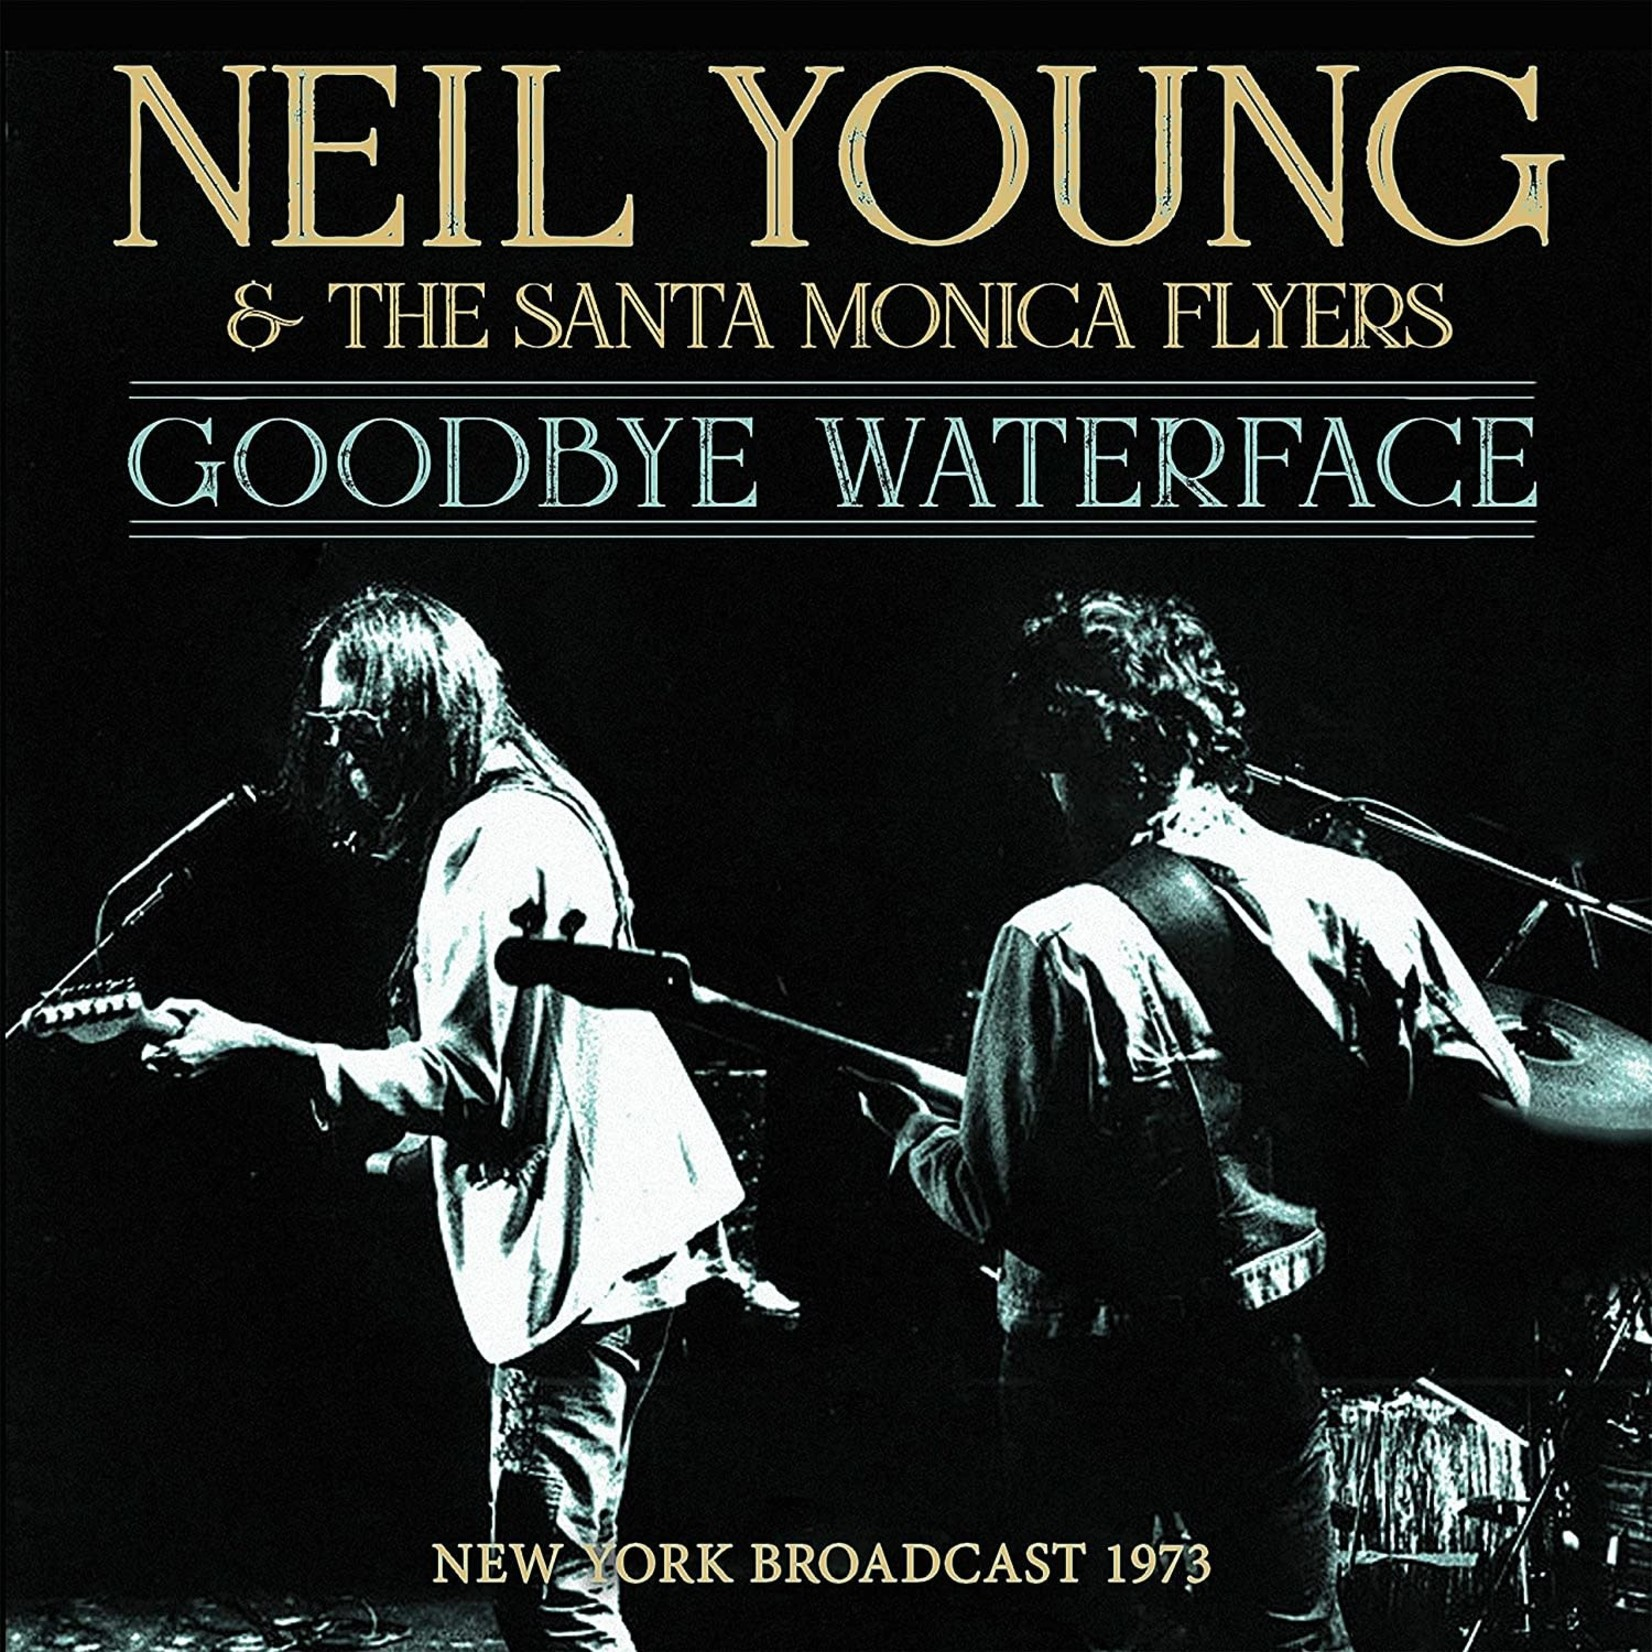 Vinyl Neil Young - Goodbye Waterface  NY 1973